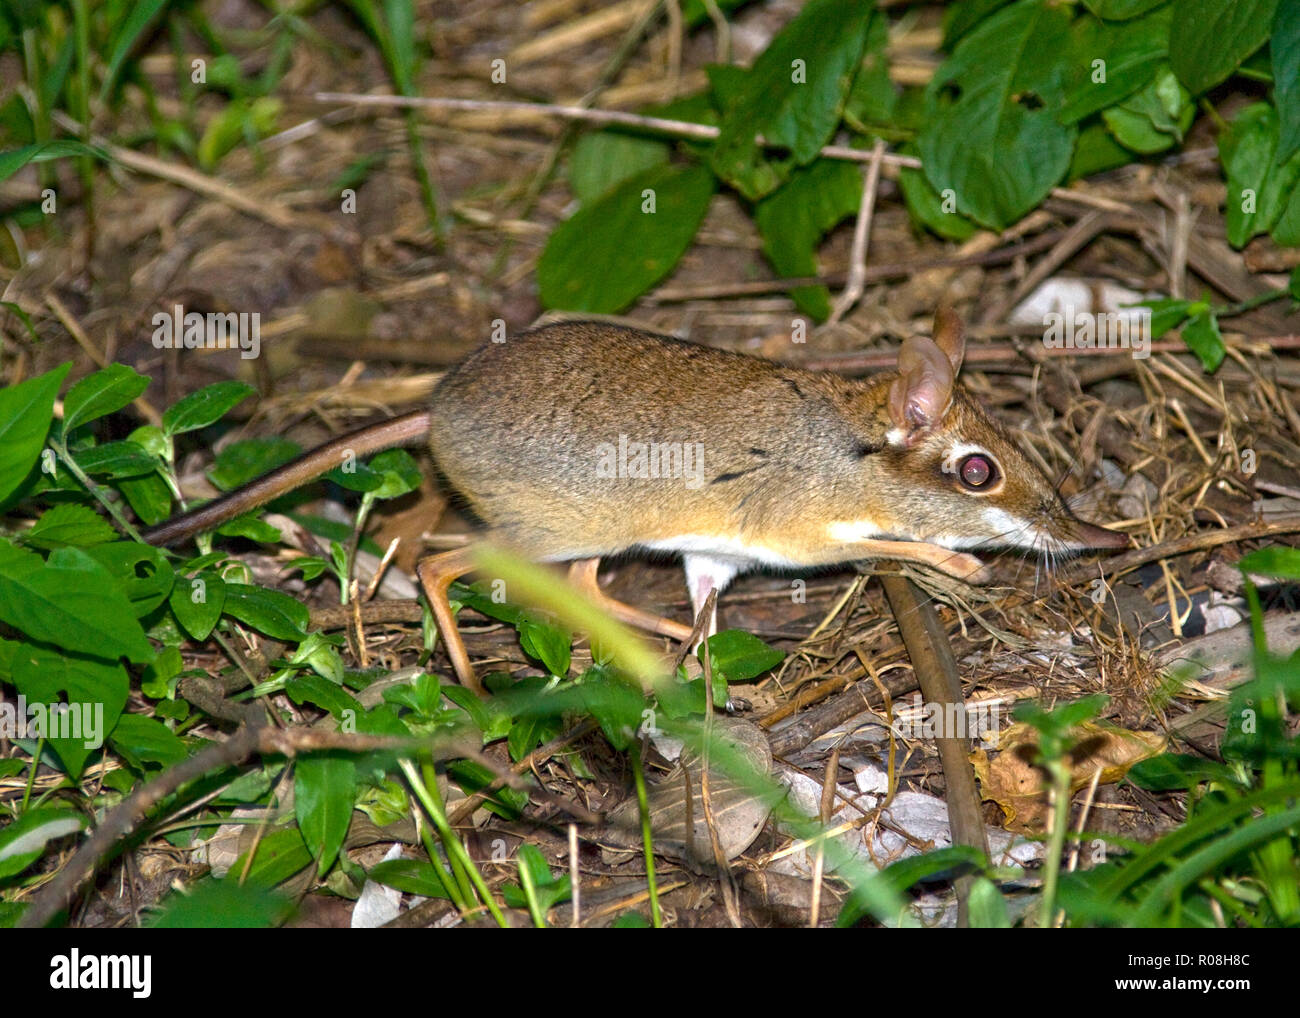 A crepuscular insectivora the Senji or Elephant Shrew is an active hunter of insects and invertebrates and relies on a rich leaf litter and series of  - Stock Image